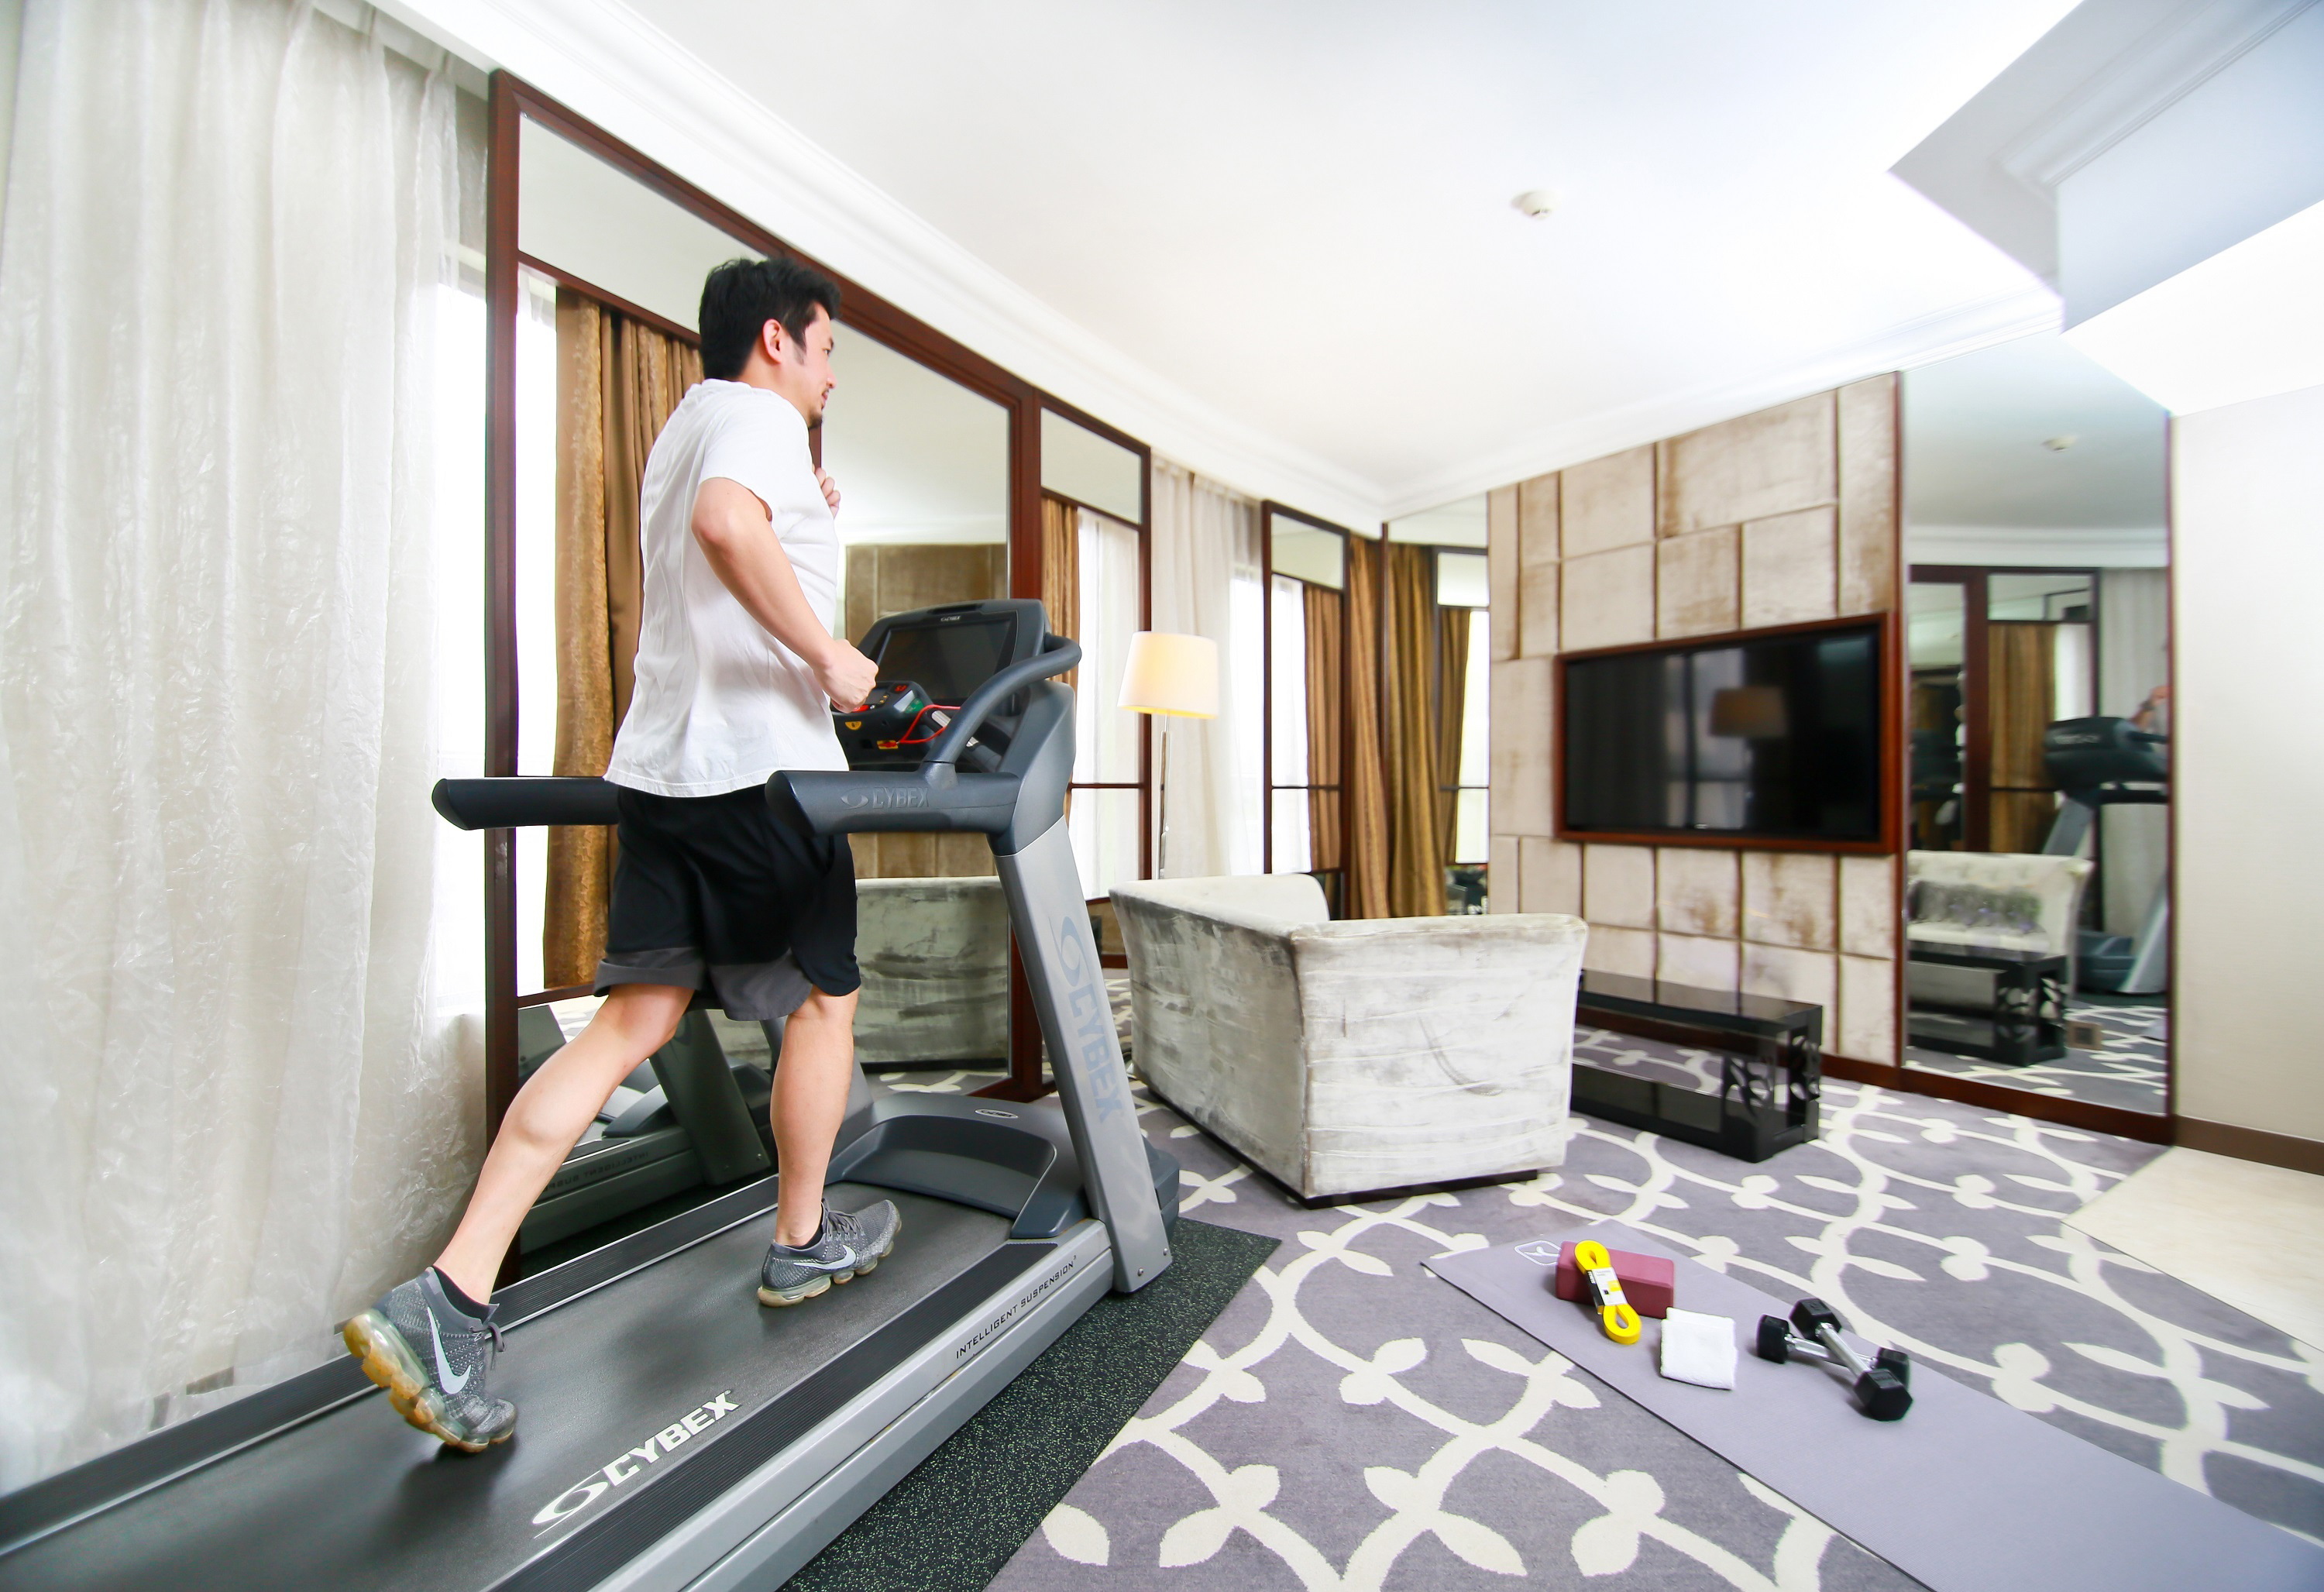 Dorsett Wanchai's Fitness Suite features in-suite treadmill and yoga set